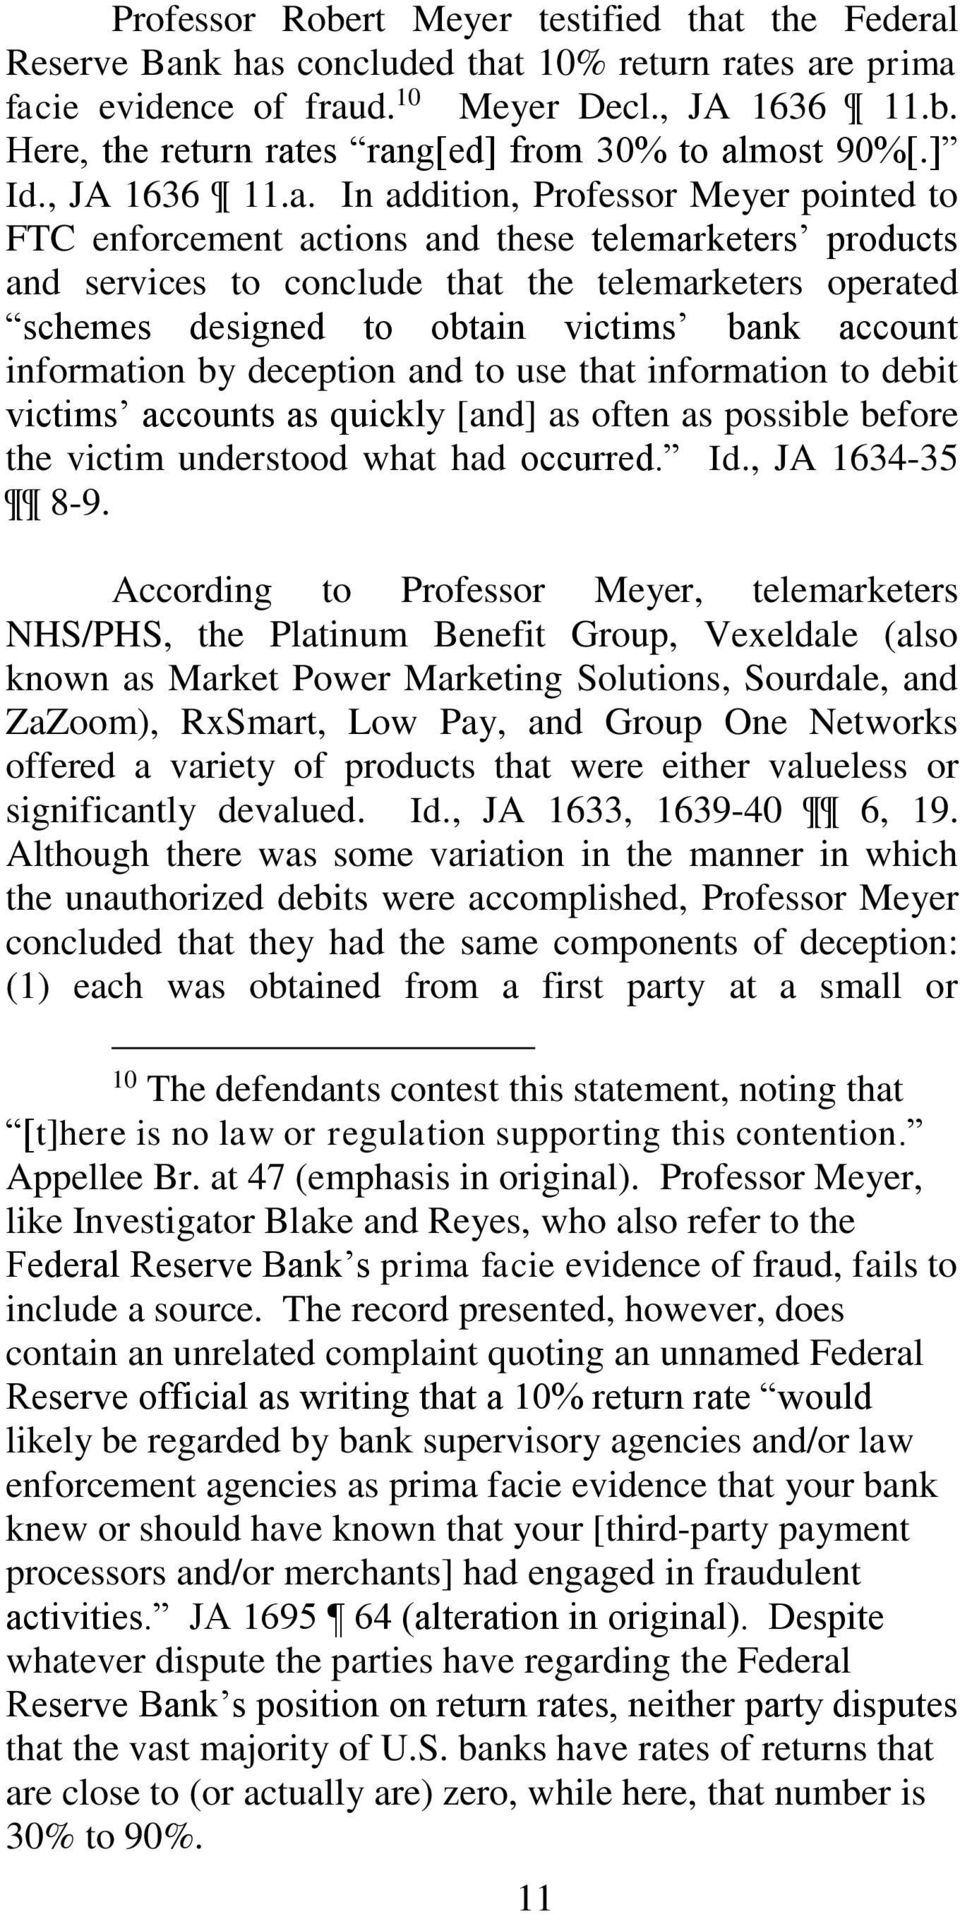 In addition, Professor Meyer pointed to FTC enforcement actions and these telemarketers products and services to conclude that the telemarketers operated schemes designed to obtain victims bank